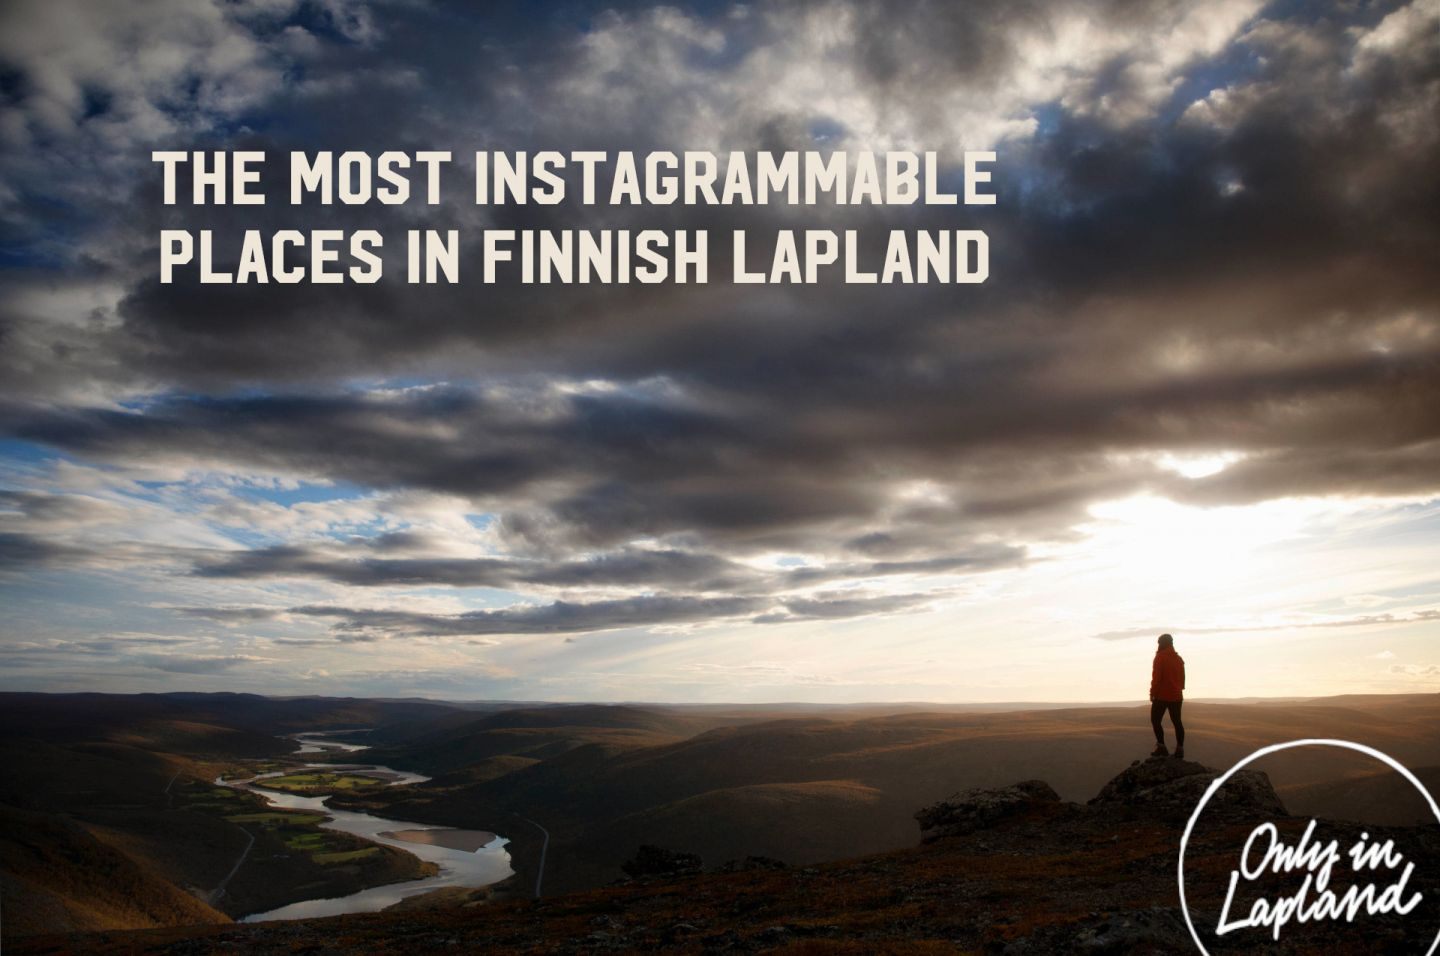 Most Instagrammable Places in Finnish Lapland